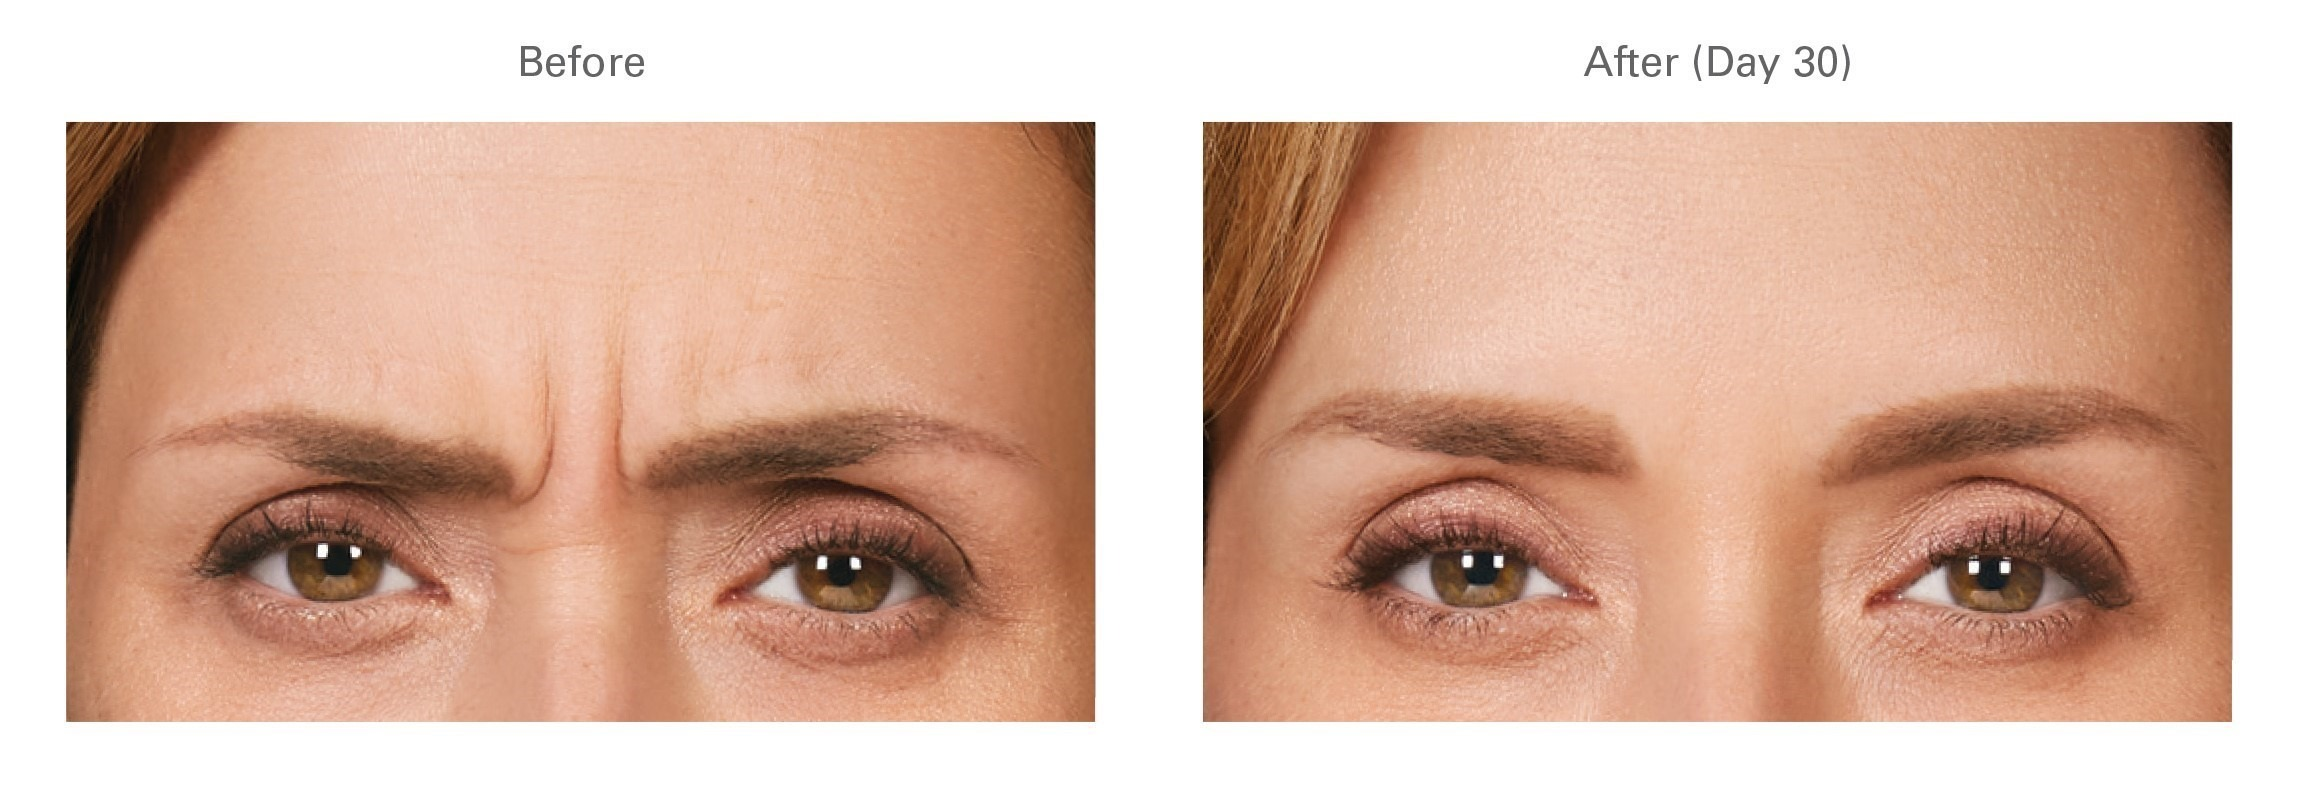 Botox® for Frown Lines